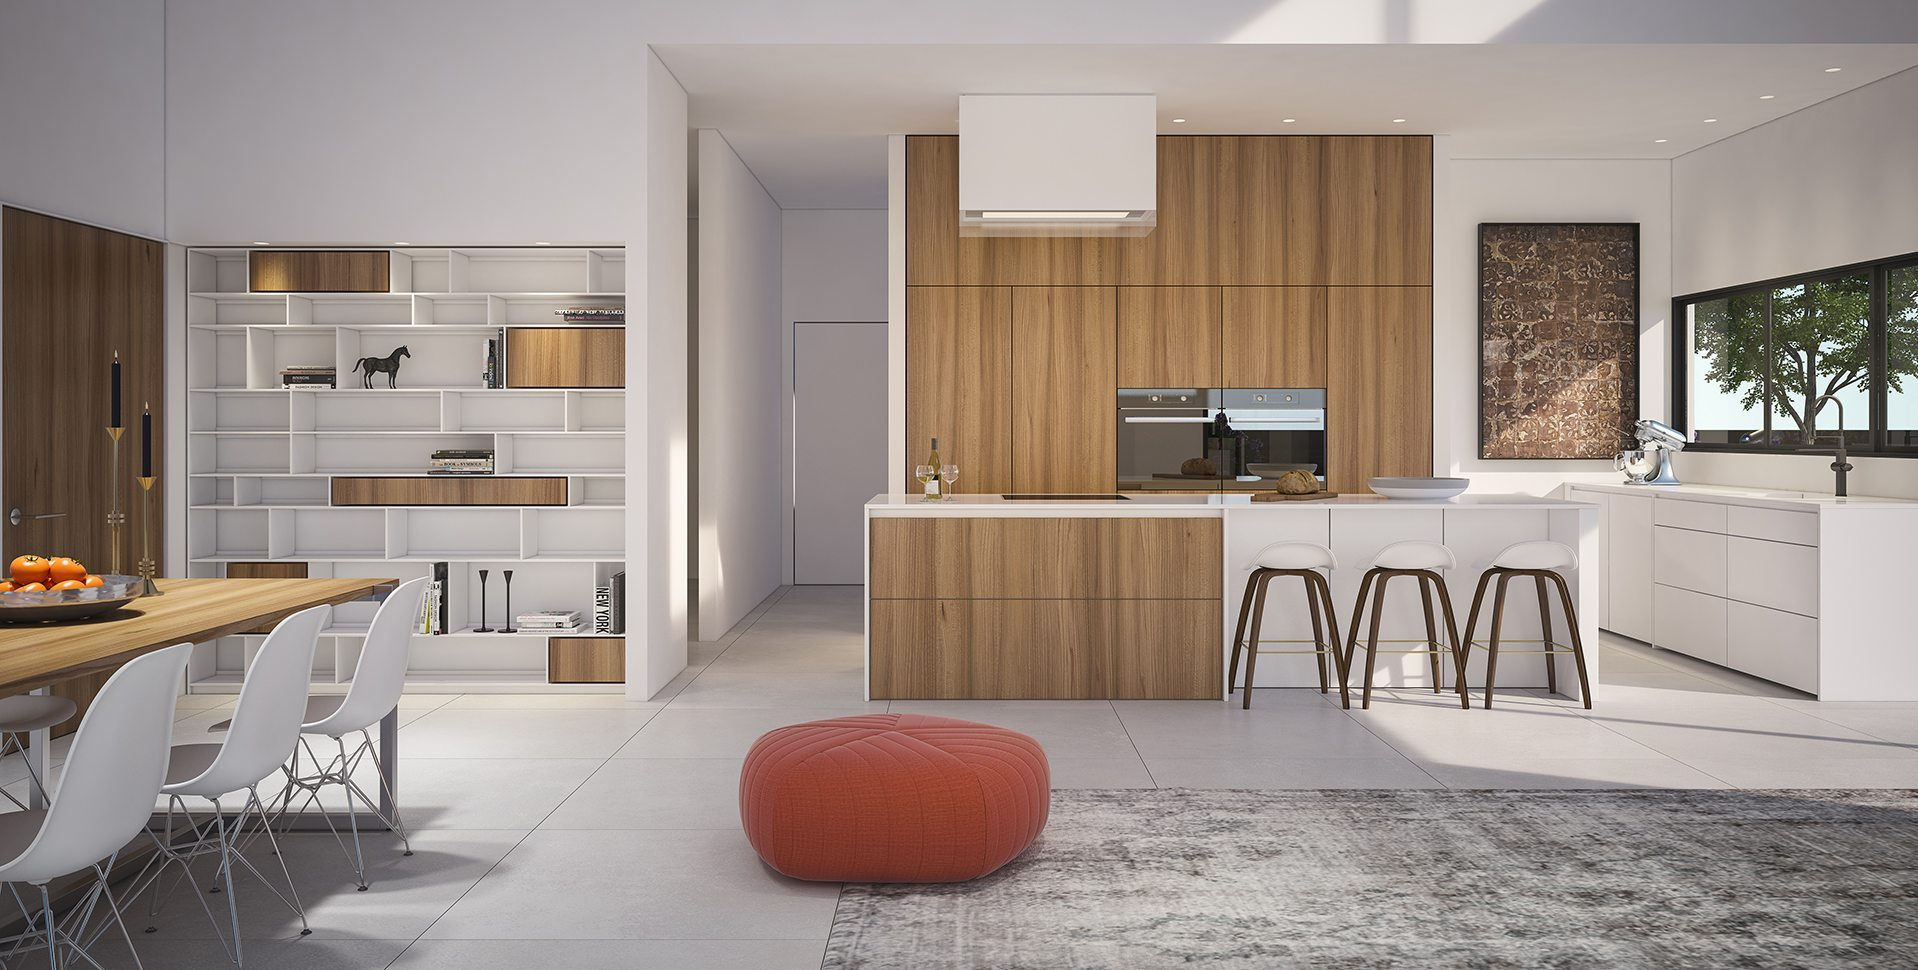 Architectural Visualization: Living room and kitchen, Hardof Project by El-Yam